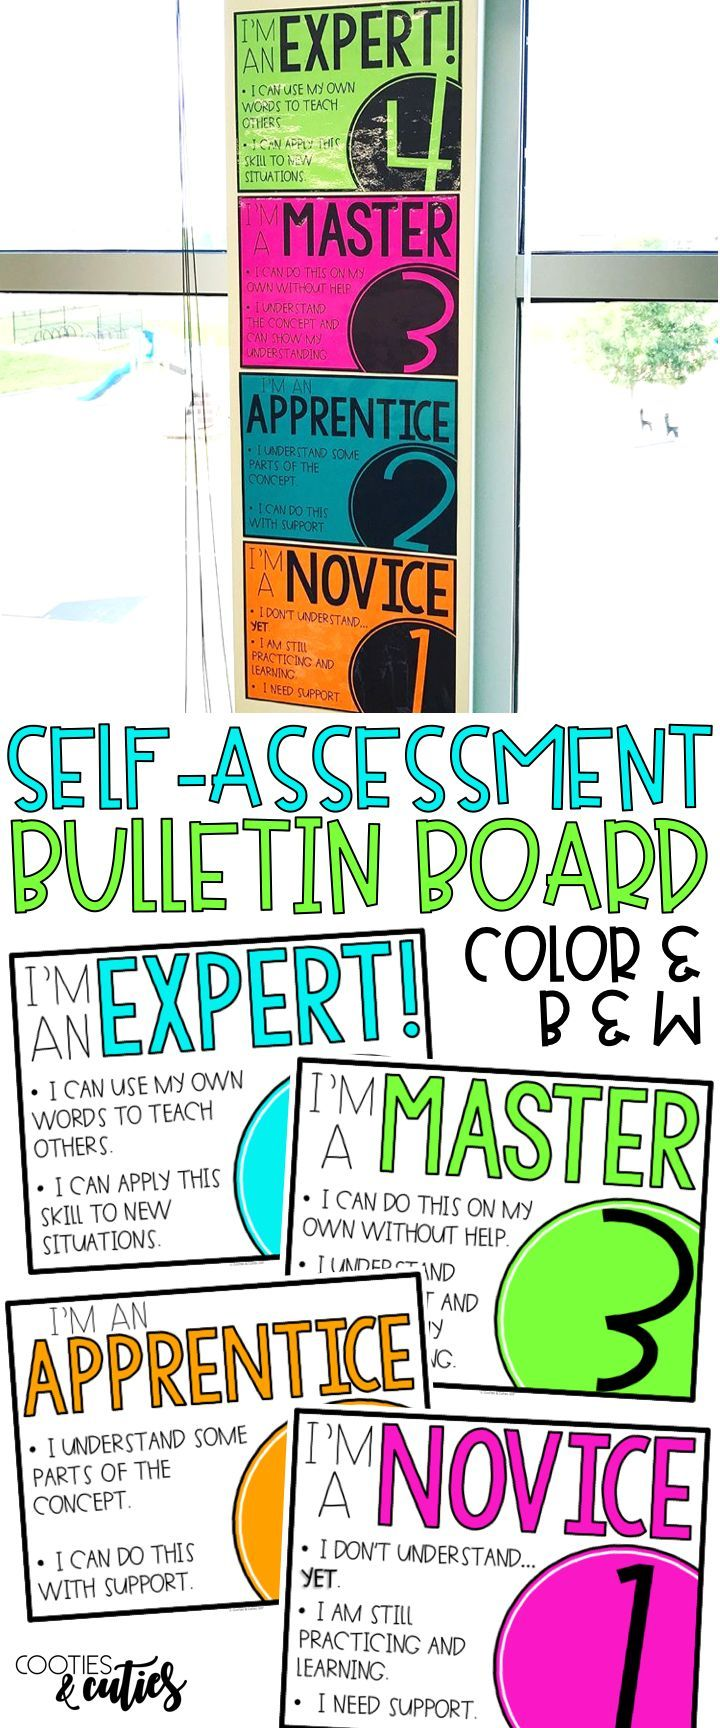 Raise your students' level of engagement with this quick and easy self assessment. Use the bulletin board to form quick, on-the-spot groups or attach smaller self-assessment sticky notes to student desks for easy check-ins.